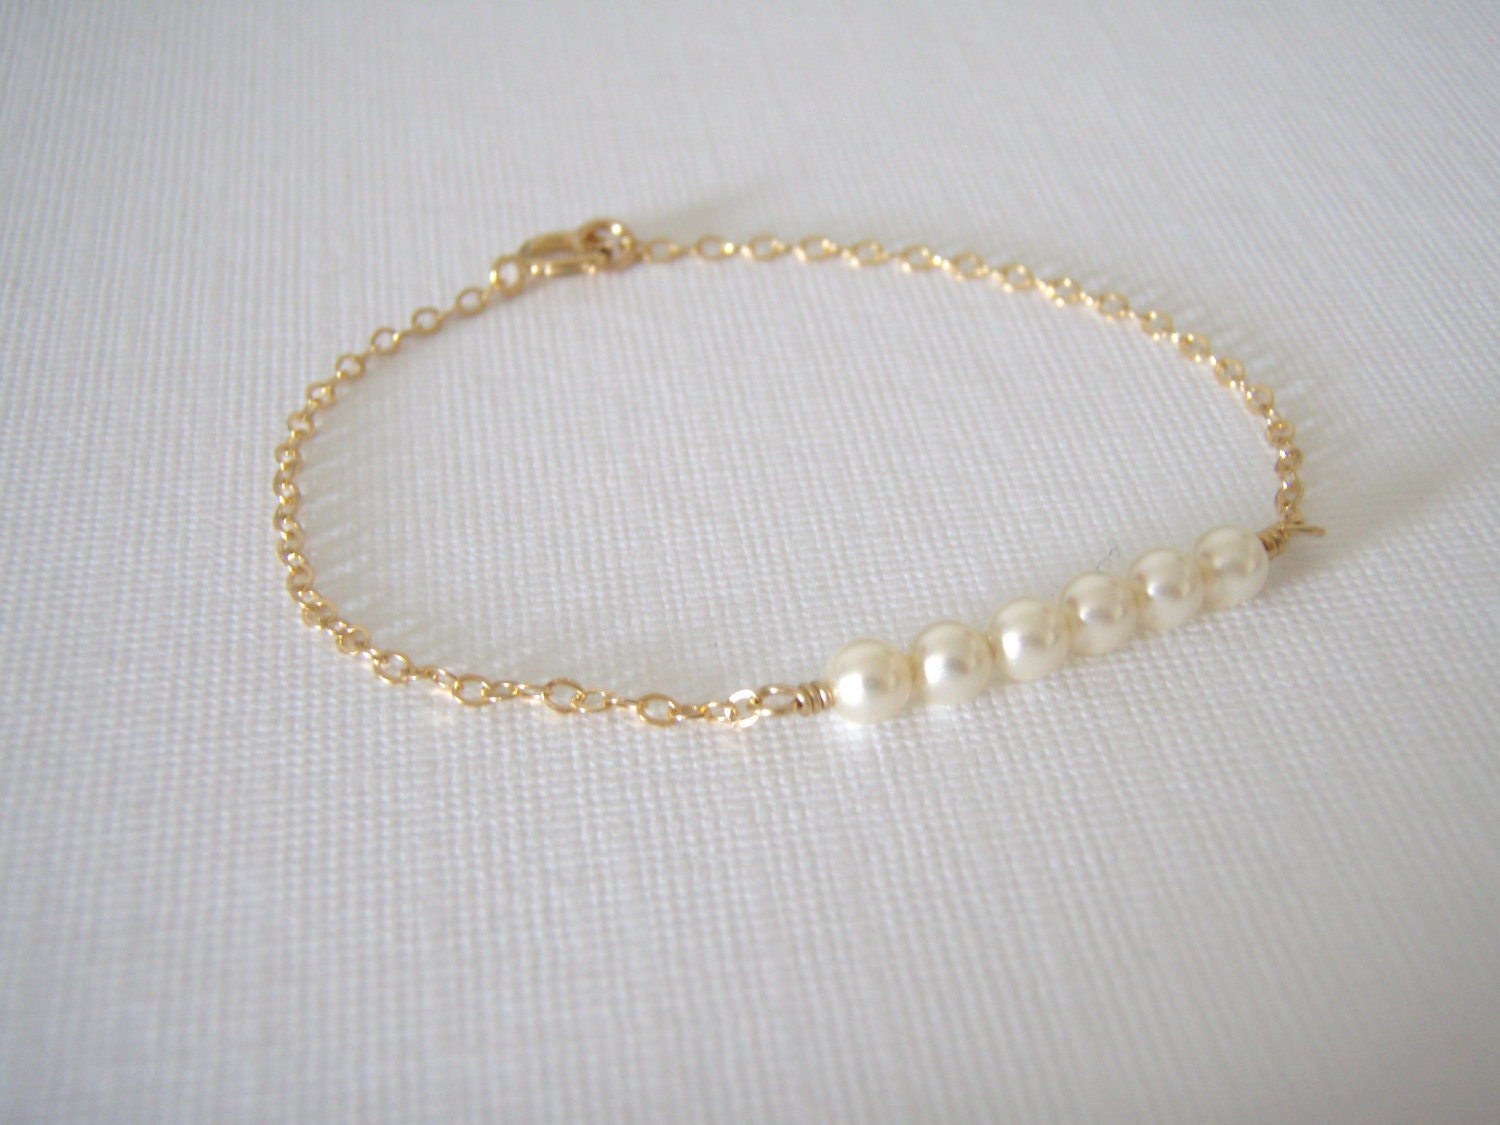 dainty filled minimal il fullxfull everyday tiny bracelet gold p tube bar